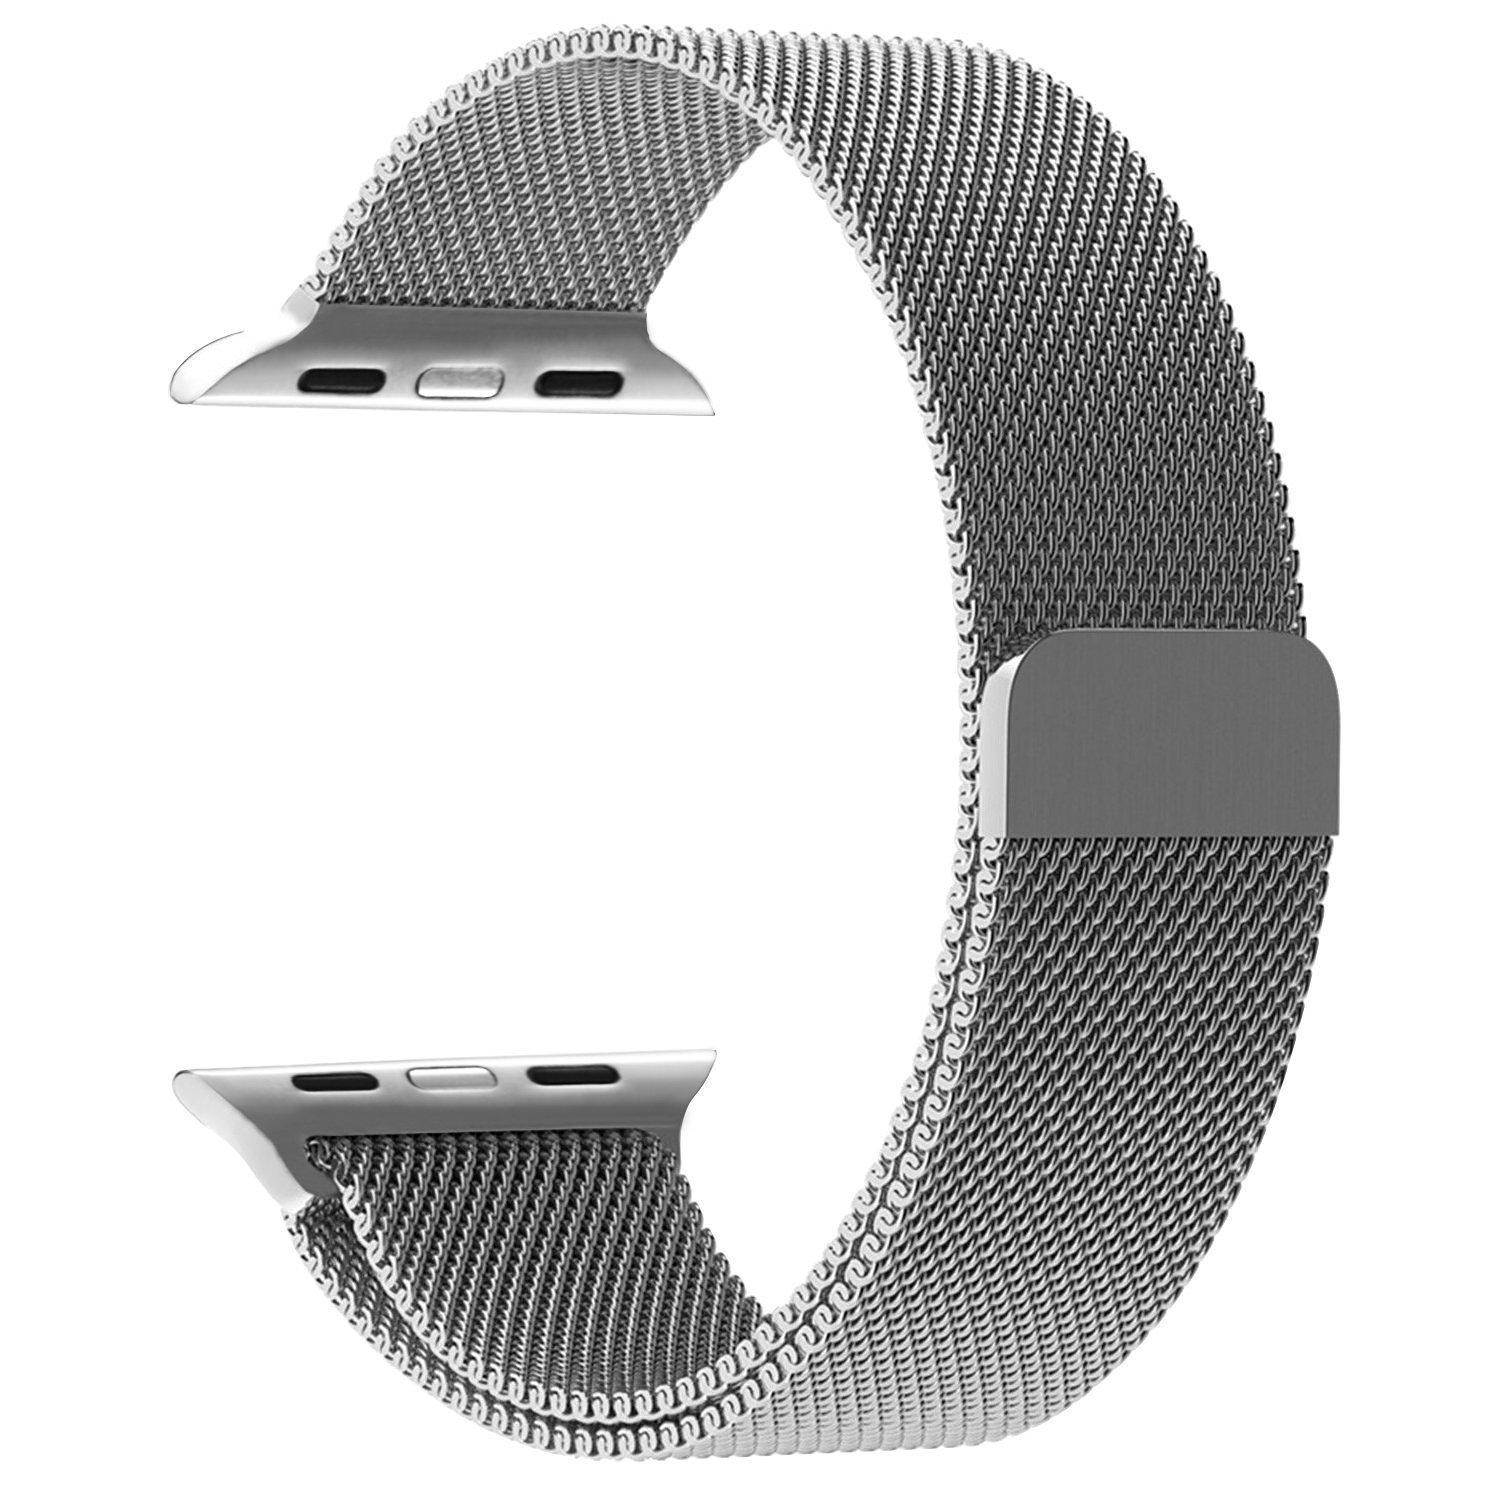 Apple Watch Penom 38mm Stainless Steel Band